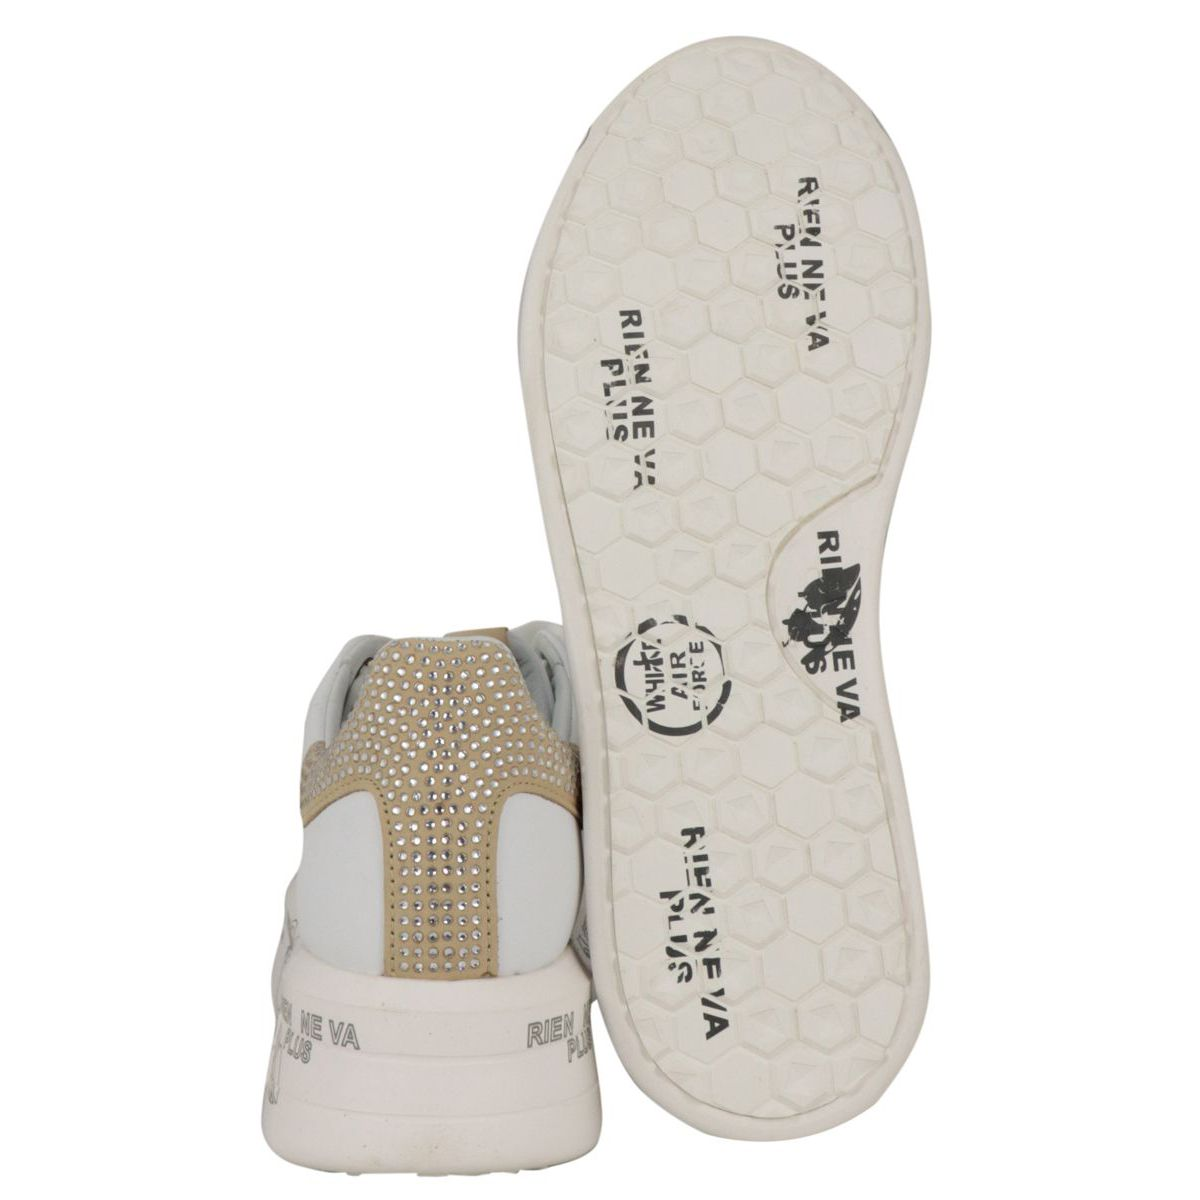 Belle leather sneakers with rhinestones on the back 4540 Optical white Premiata